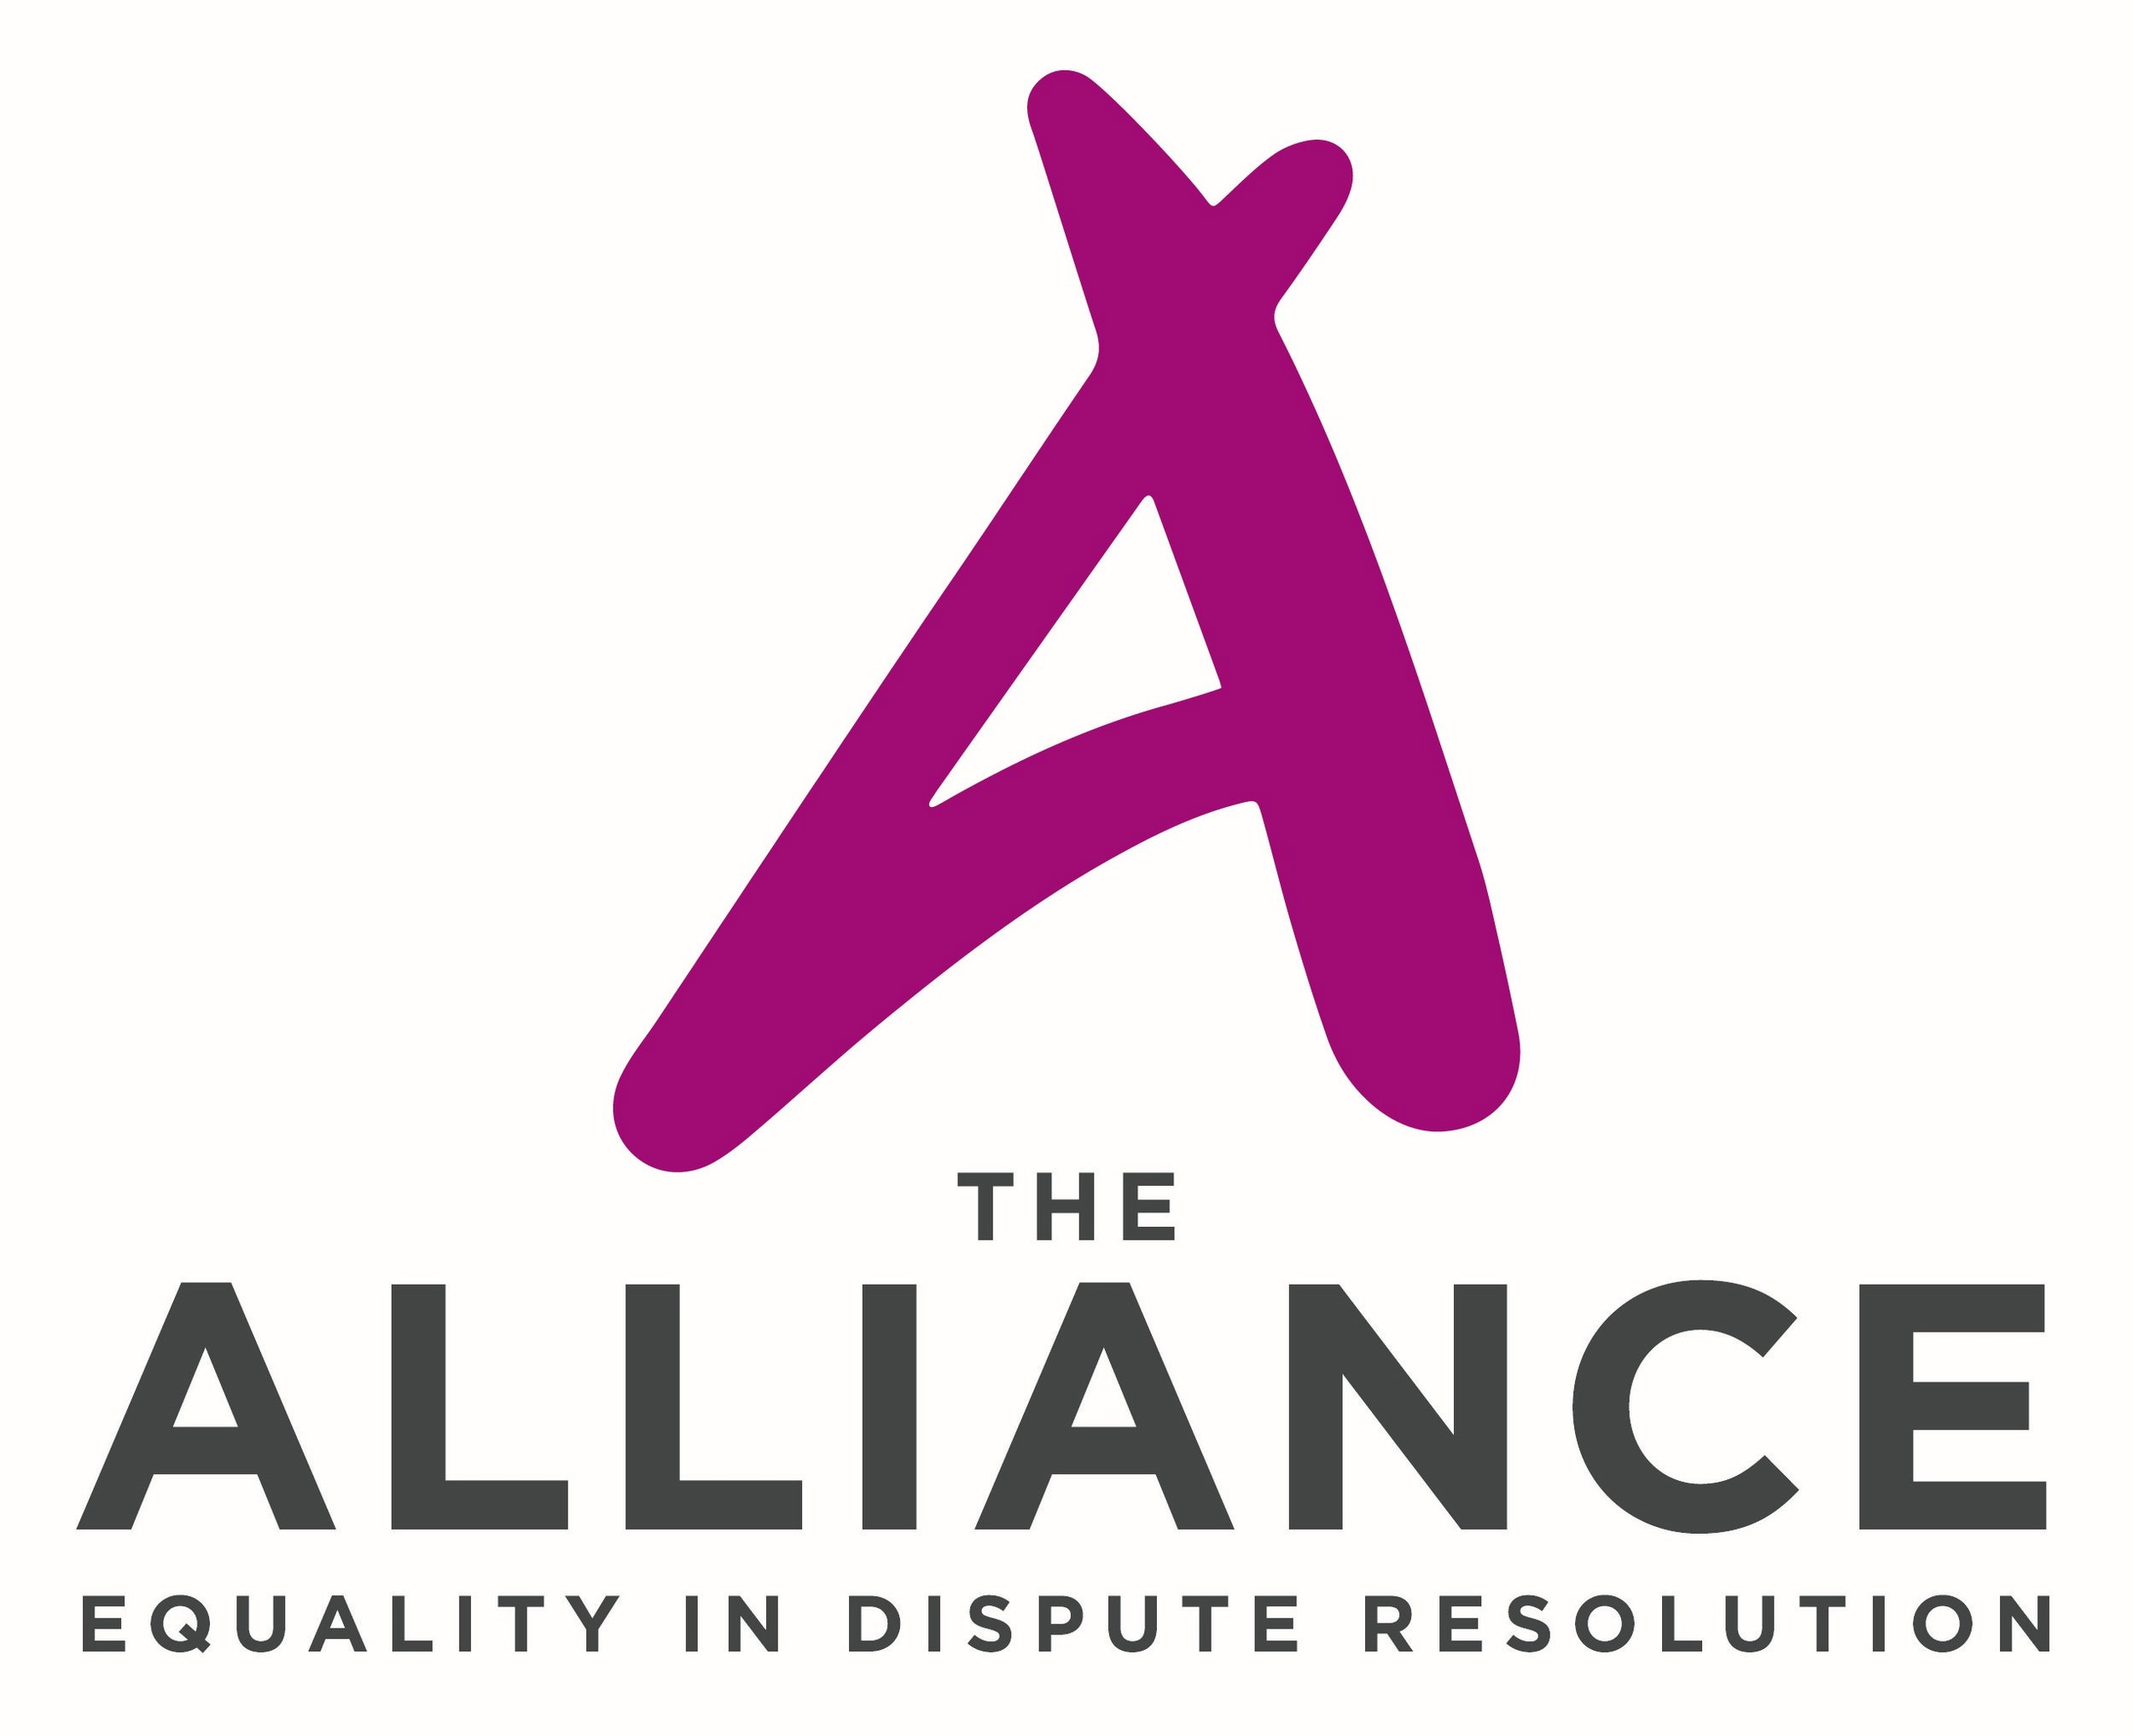 - The Alliance for Equality in Dispute Resolution is a not for profit organization formed to advocate for increased diversity in the international dispute resolution community. As an association, we promote inclusivity in all aspects of the dispute resolution world. We strive for equality of opportunity regardless of location, nationality, ethnicity, sexual orientation, gender or age.In a recent survey,80% of respondents thought that tribunals contained too many white arbitrators, 84% thought that there were too many men and 64% felt that there were too many arbitrators from Western Europe or North America. 54% of respondents felt that, assuming expertise and experience, it was desirable that tribunal members came from a diverse range of ethnic and national backgrounds (BLP Survey on Diversity in Arbitration 2016).At the Alliance we focus on addressing the lack of diversity in relation to ethnicity and geography in international arbitration, as well as seeking to encourage equality of opportunity for all who wish to practice in this field.  We acheive this through training and global international dispute resolution networks.